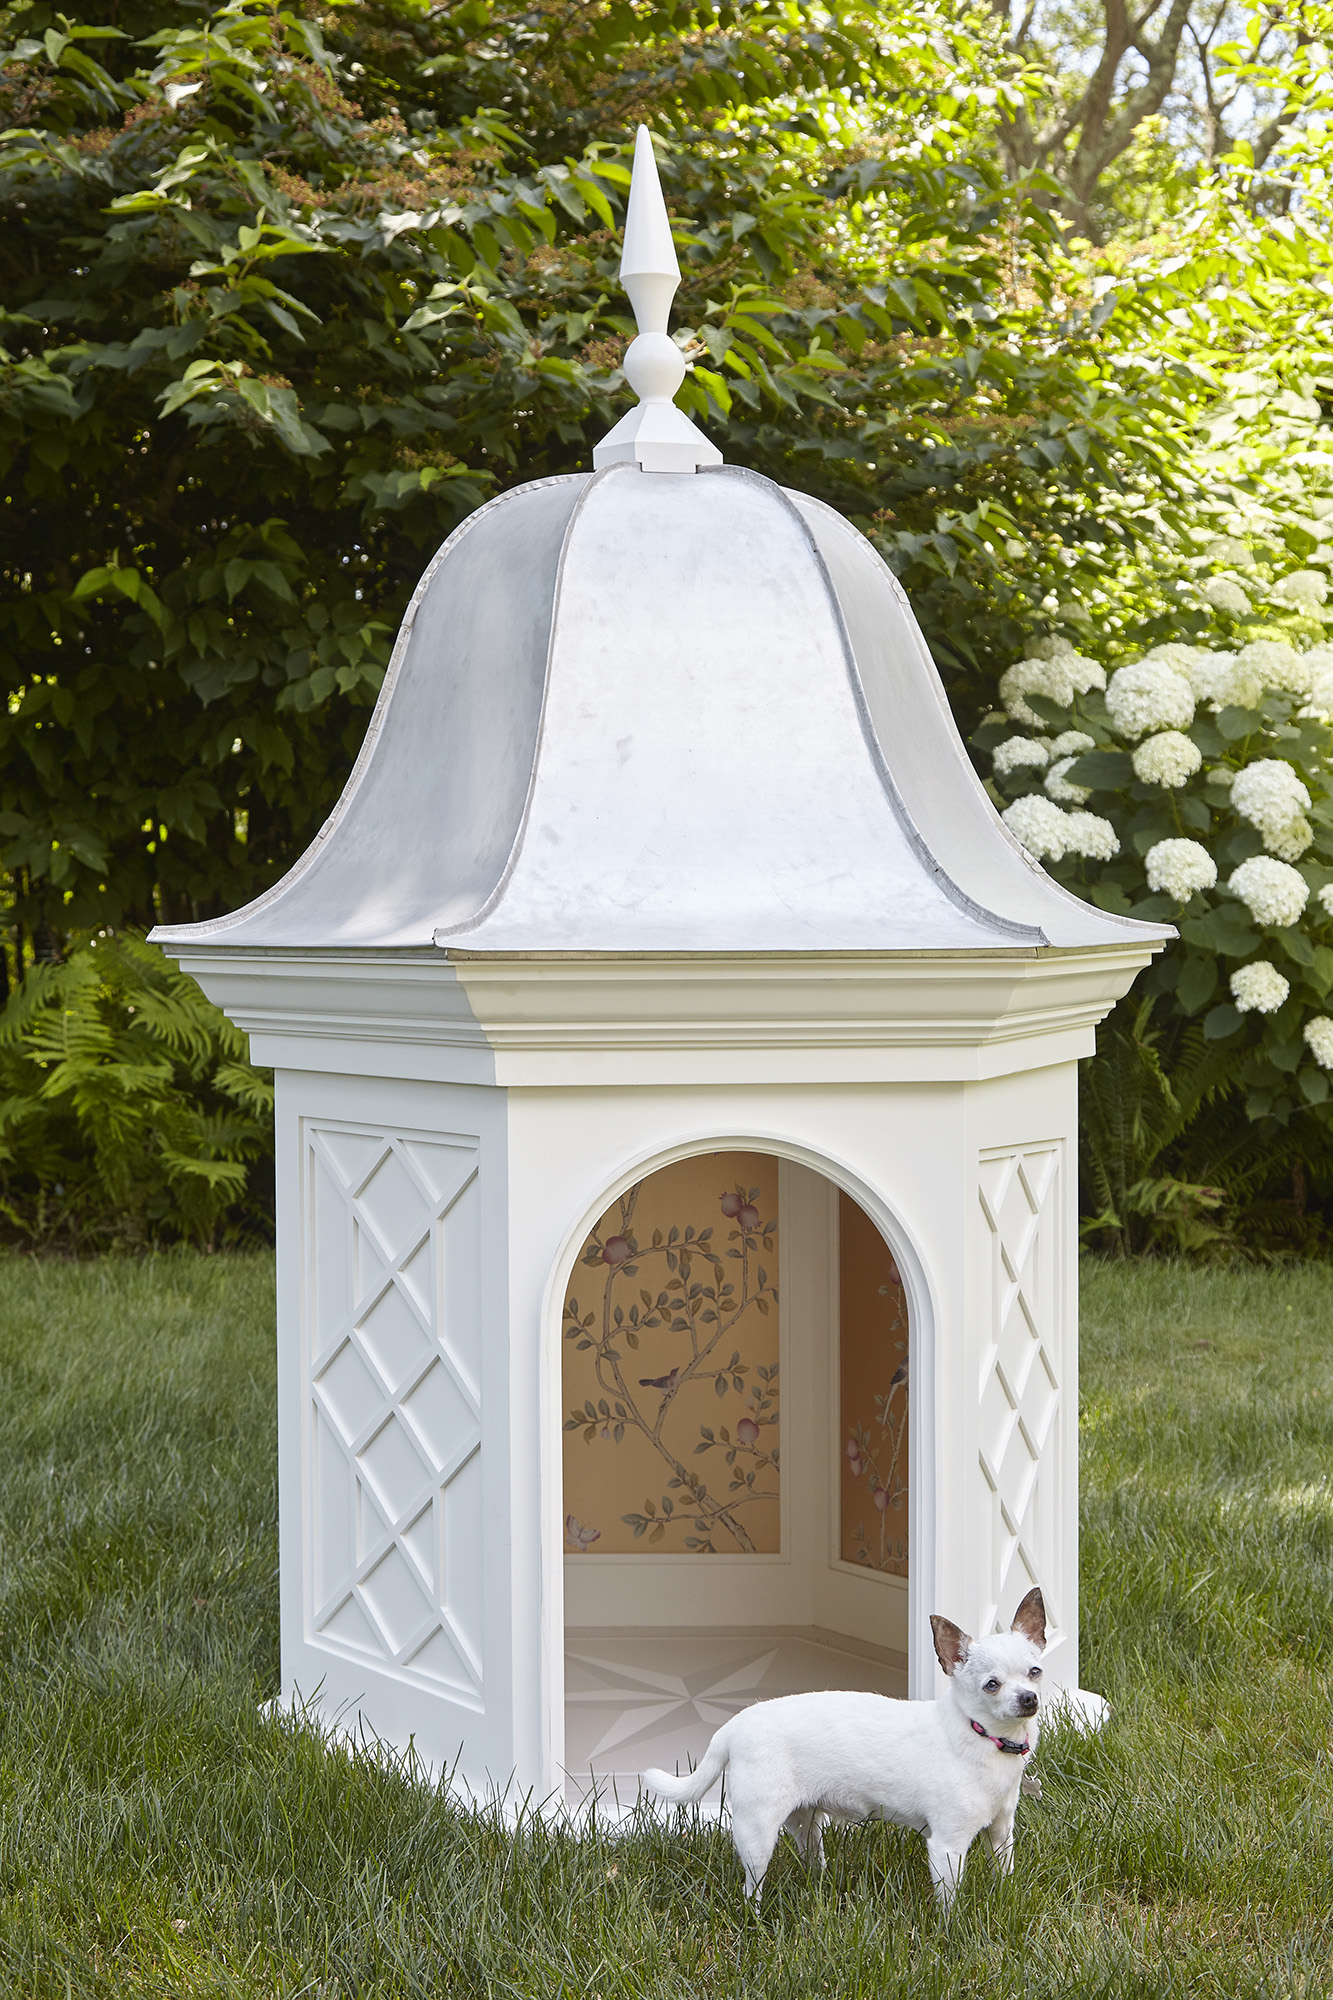 These Hamptons dog houses help NY's rescue mutts